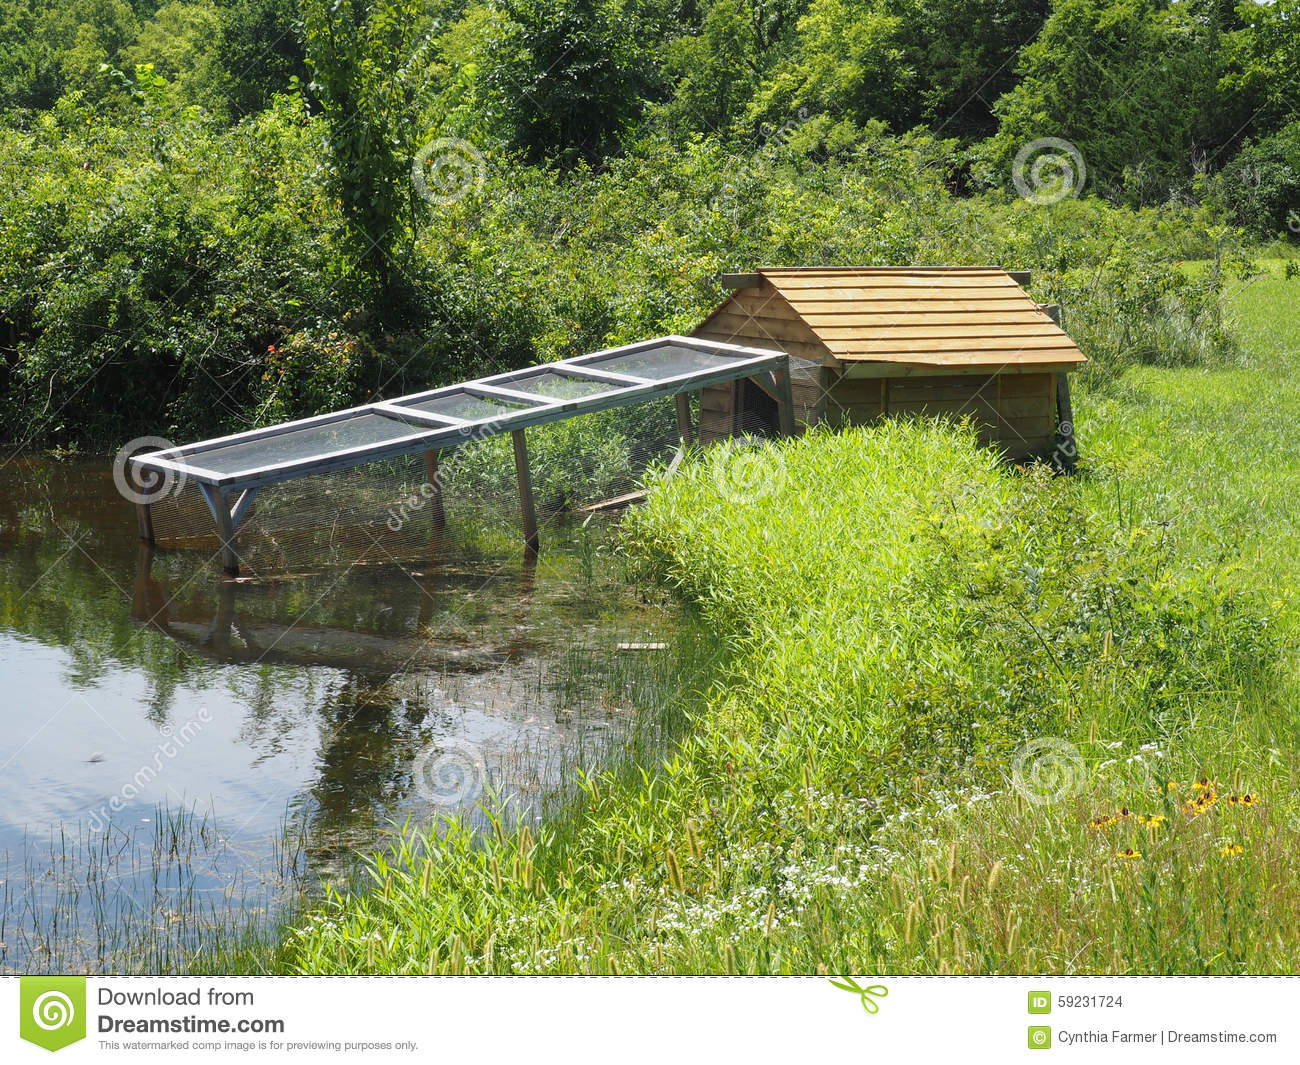 Duck house by a pond stock photo image of grass mesh for Building a duck house shelter